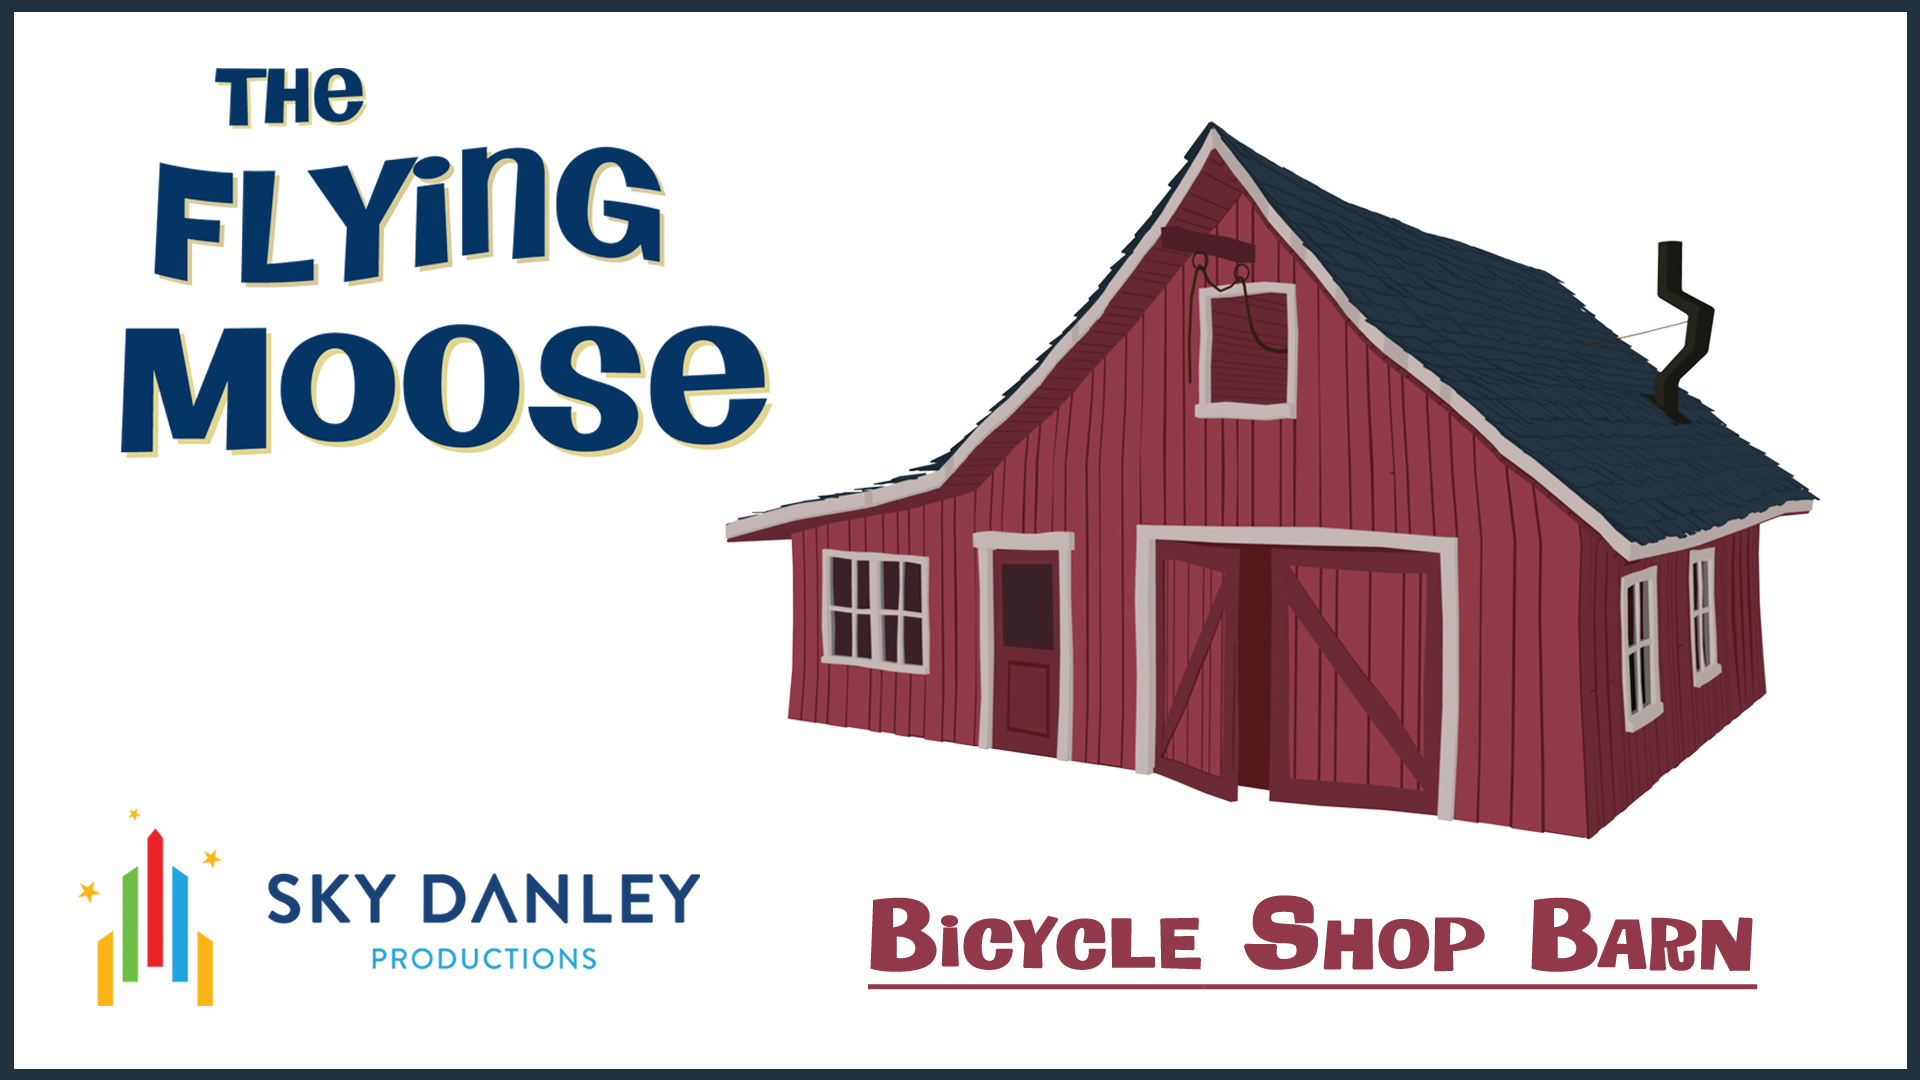 Bicycle Shop Barn from THE FLYING MOOSE cartoon.